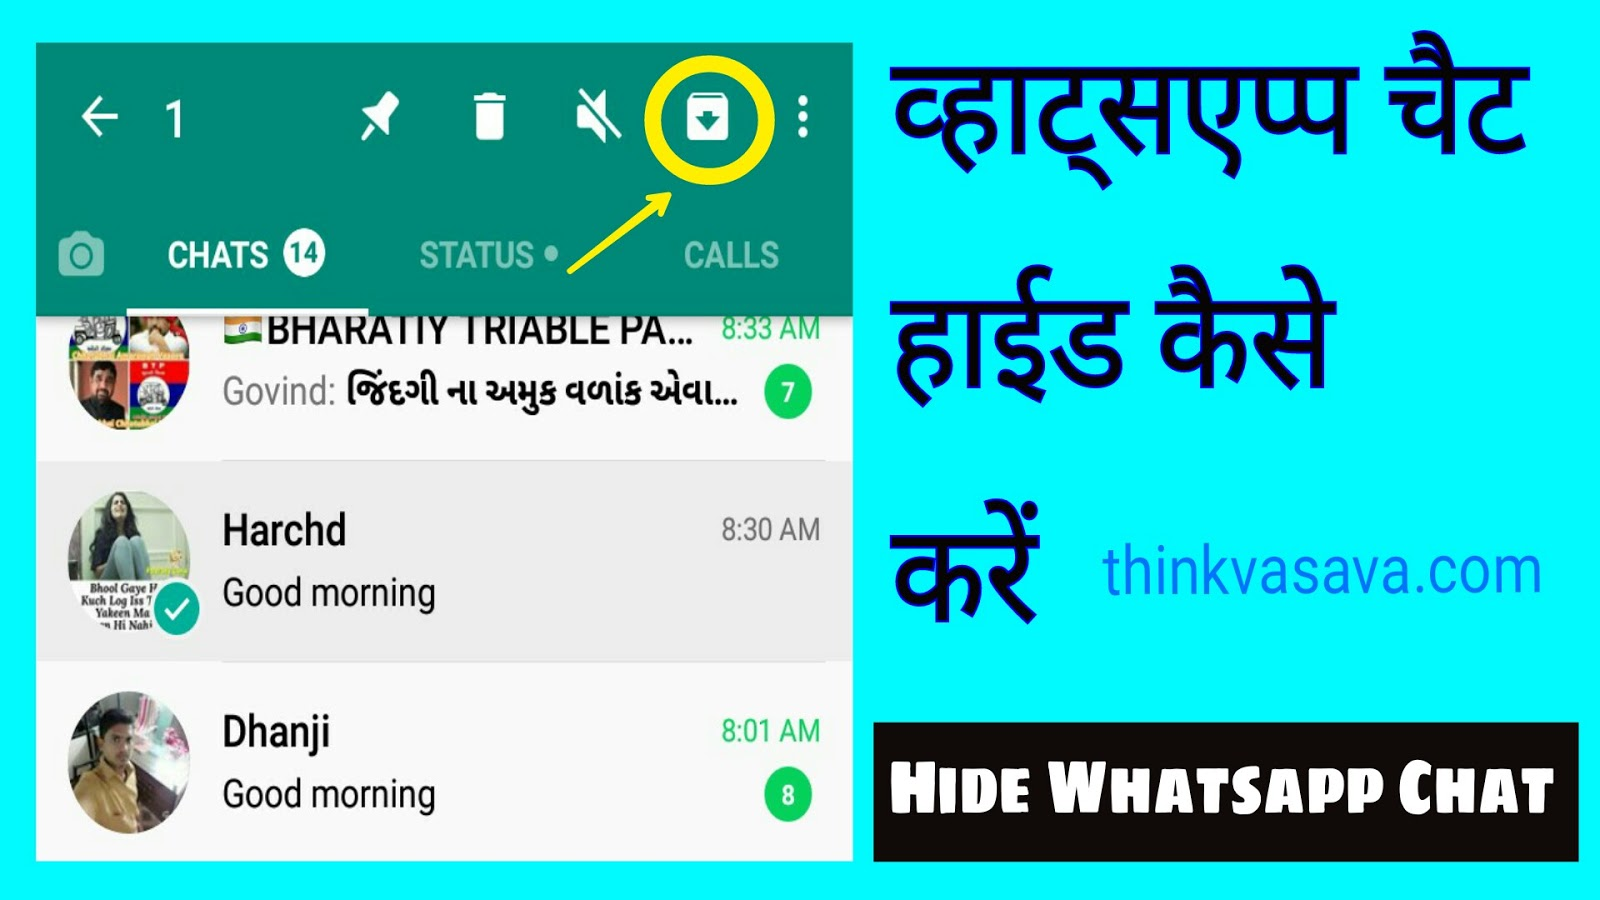 Whatsapp Chat Hide/Unhide Kaise Kare